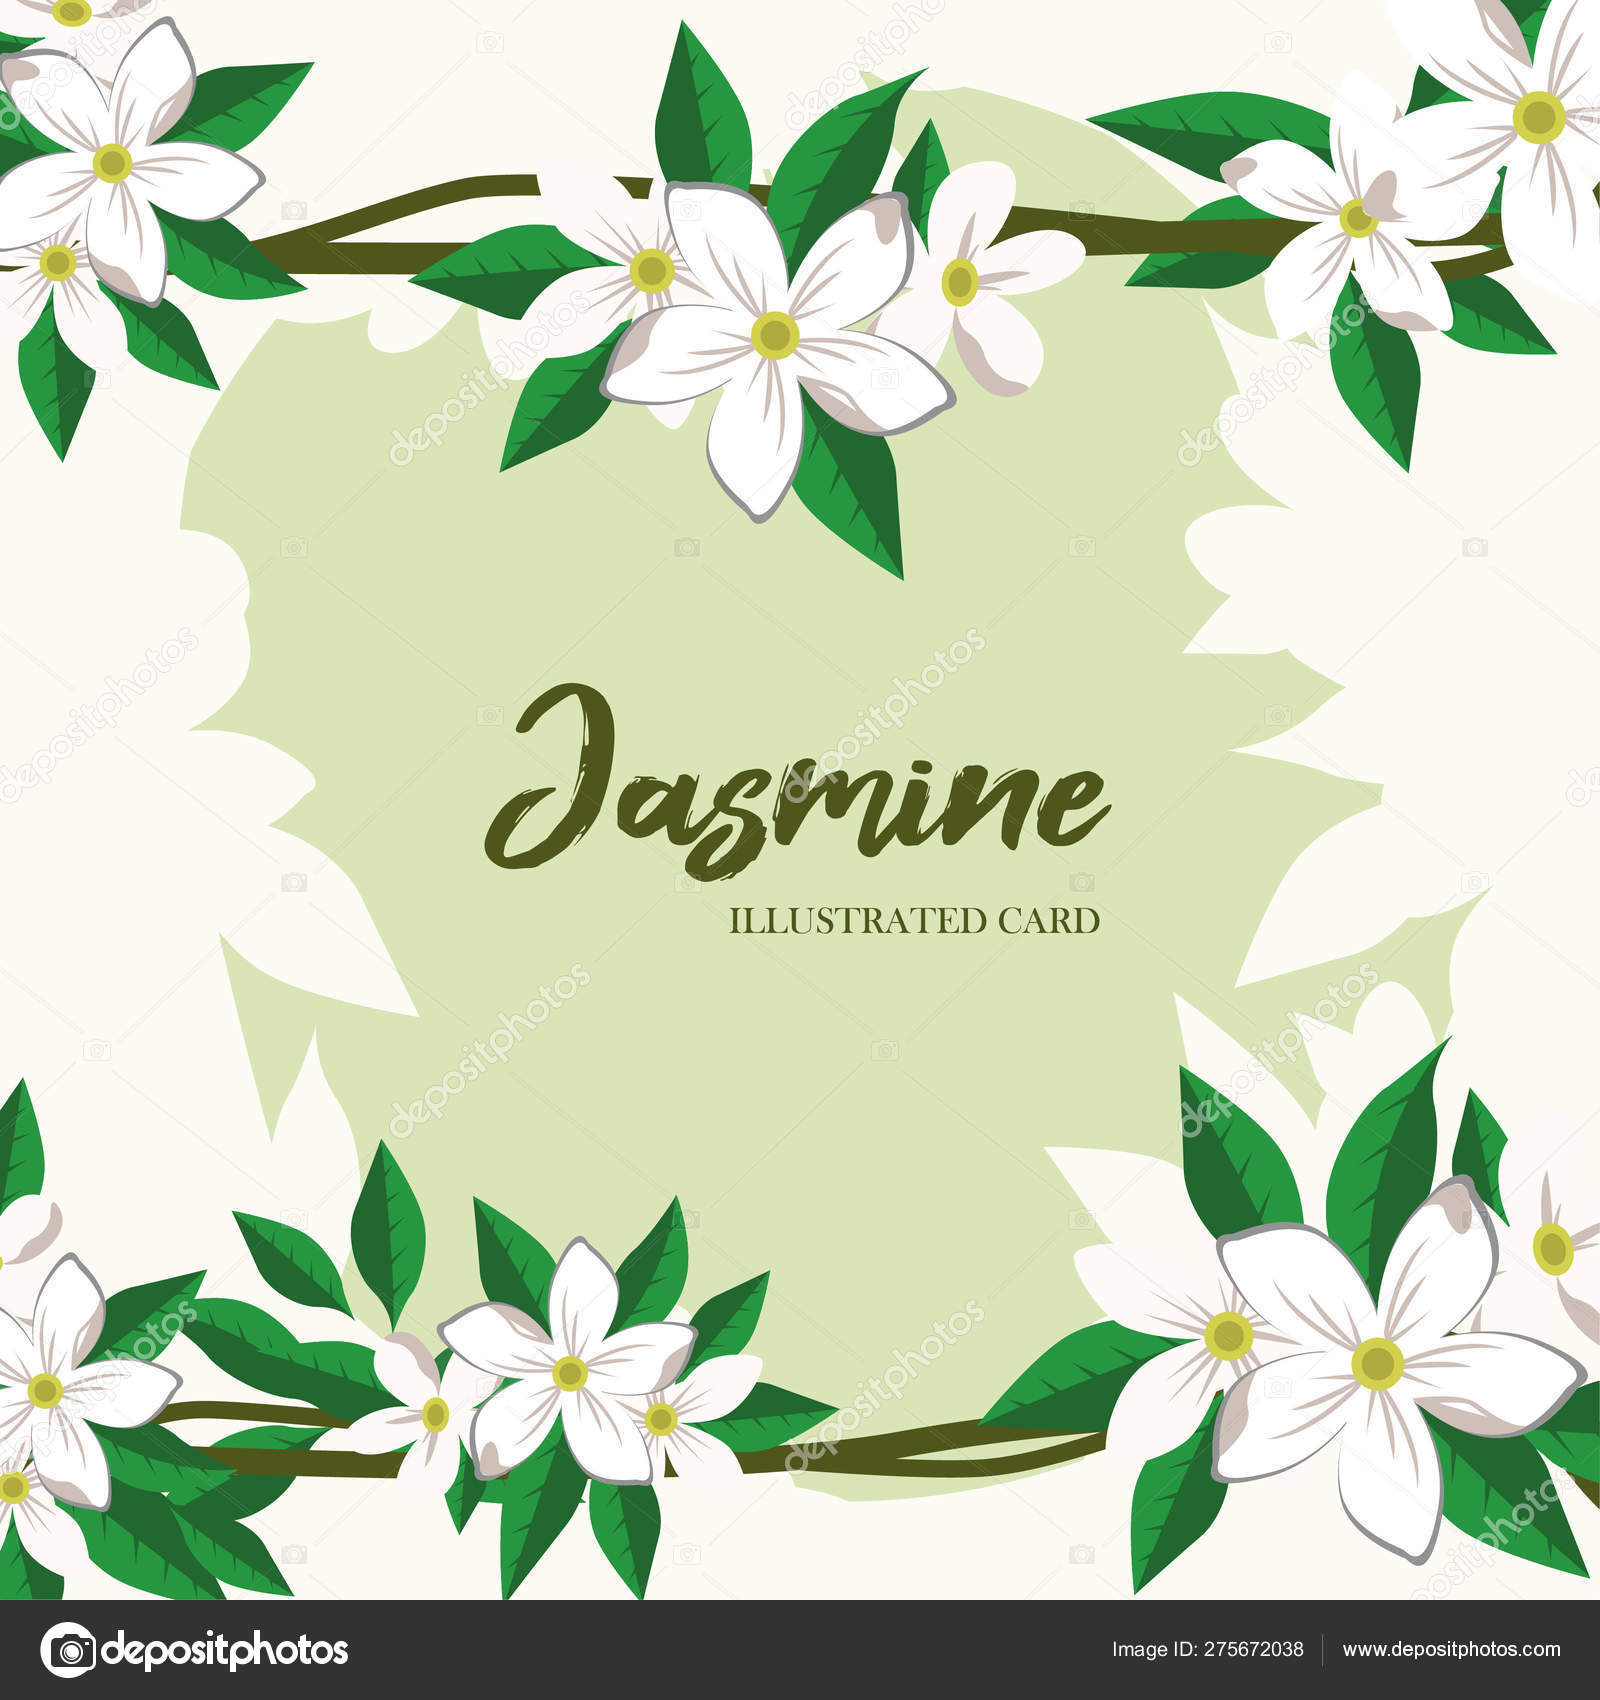 Vector Jasmine Flowers Horizontal Banner Design For Tea Natural Cosmetics Beauty Store Health Care Products Perfume Essential Oil Aromatherapy Can Be Used As Greeting Card Wedding Invitation Stock Vector C Yaroslavna2408 275672038